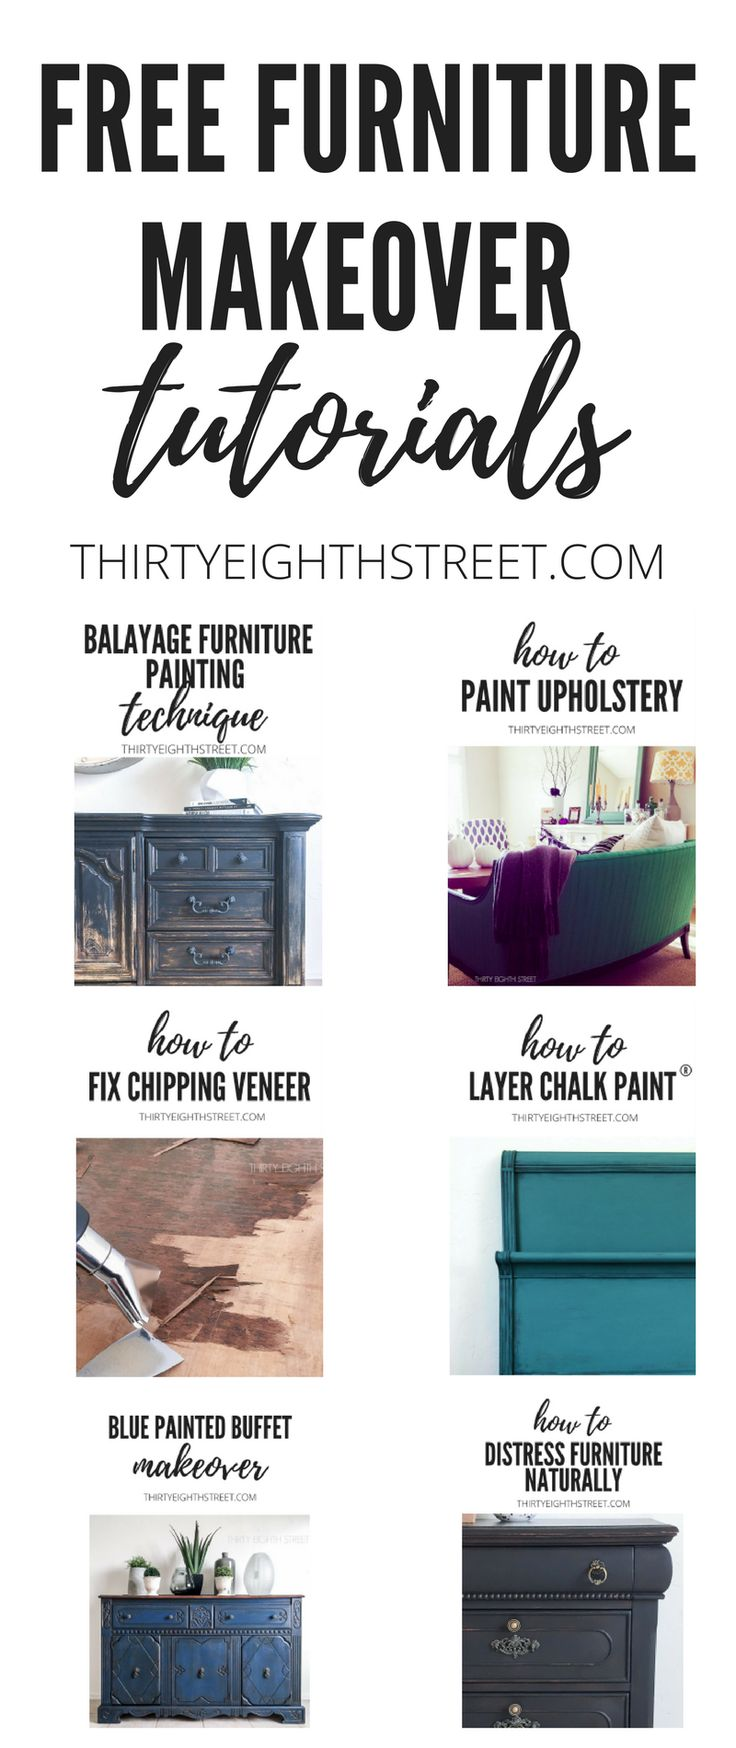 TONS of Furniture Before and Afters. Painted Furniture Makeovers. DIY Furniture Tutorials! Chalk Painted Furniture Ideas. Repurposing Furniture Ideas. Furniture Refinishing Tutorials. Painting Techniques and more! #paintingfurniture #diy #refinishingfurniture #diyfurniture #furnituremakeovers #beforeandafters